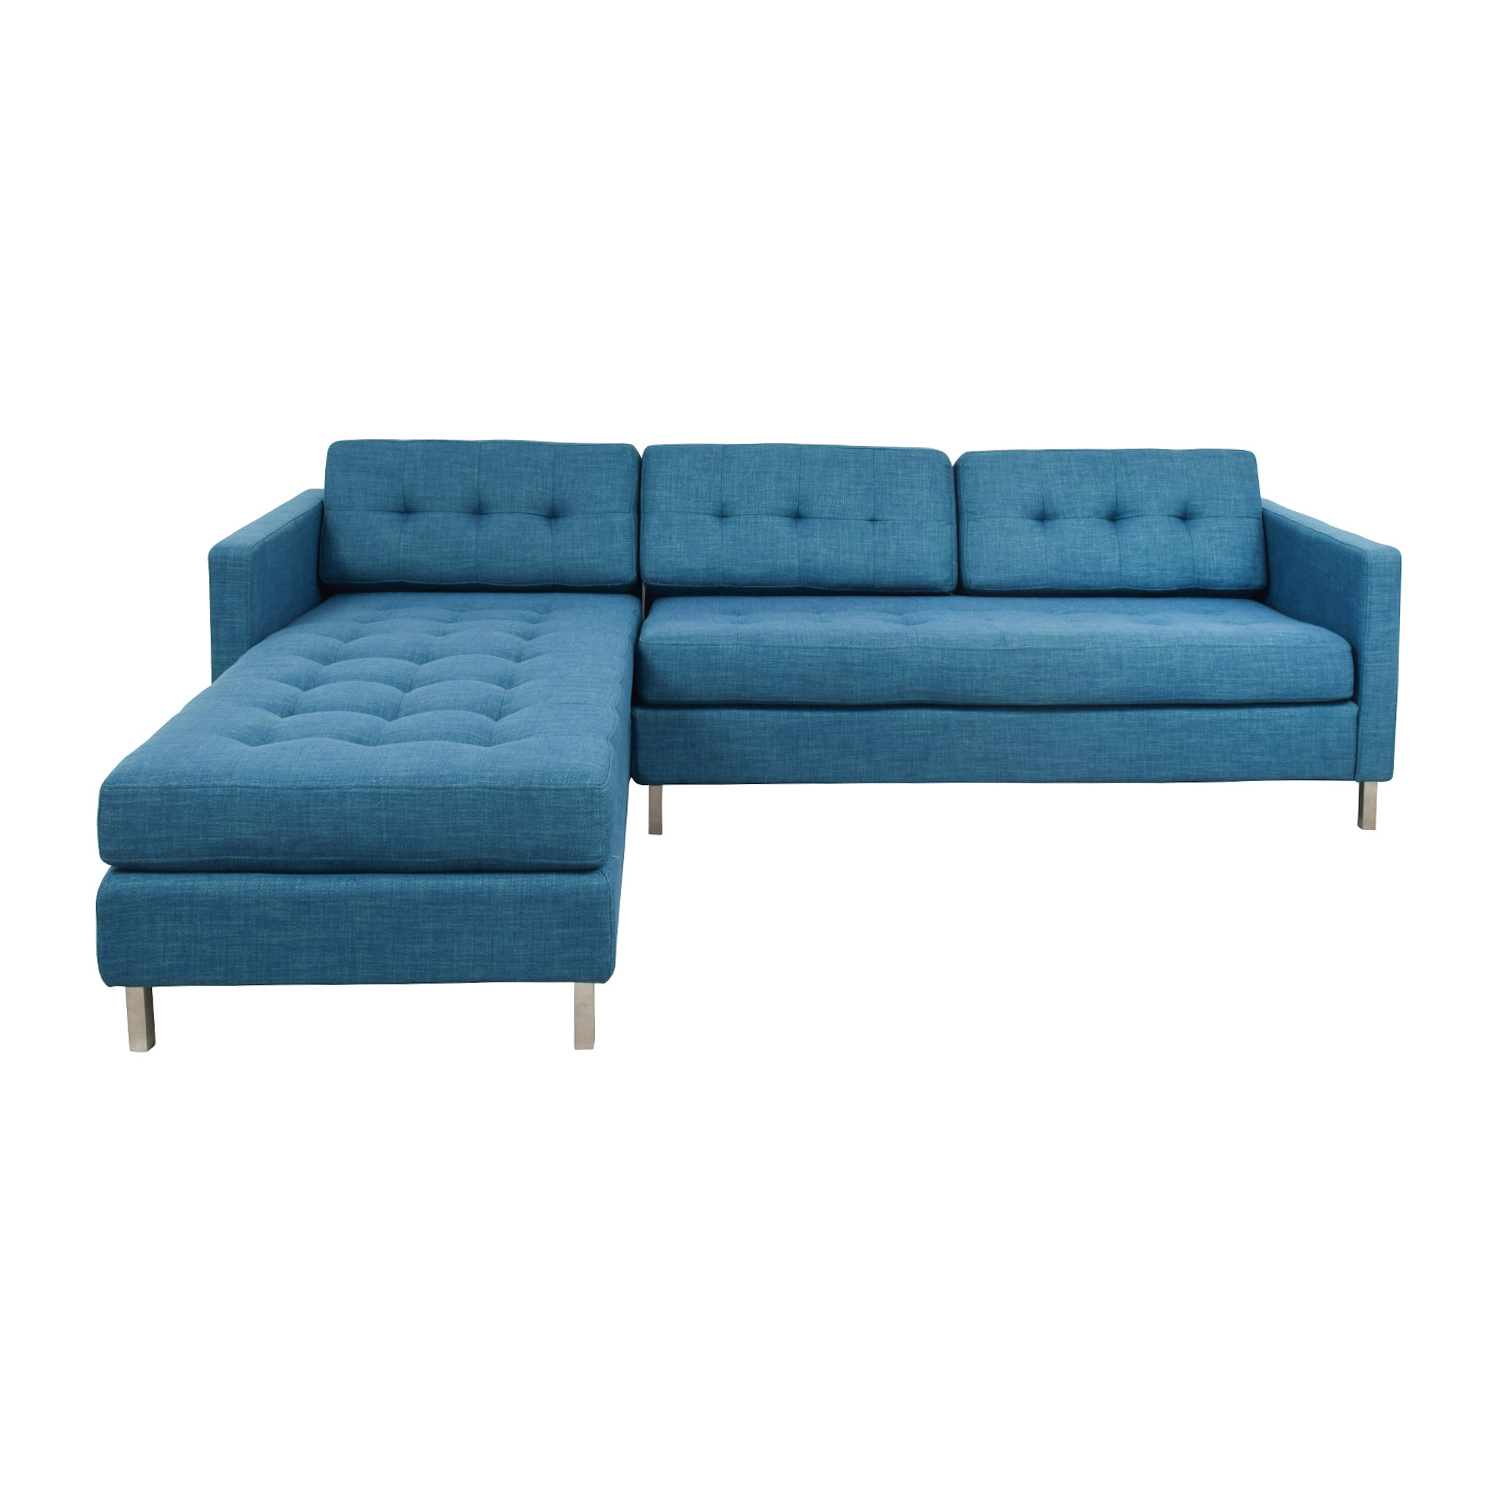 Amazing 33 Off Cb2 Cb2 Ditto Ii Peacock Sectional Sofa Sofas Pdpeps Interior Chair Design Pdpepsorg